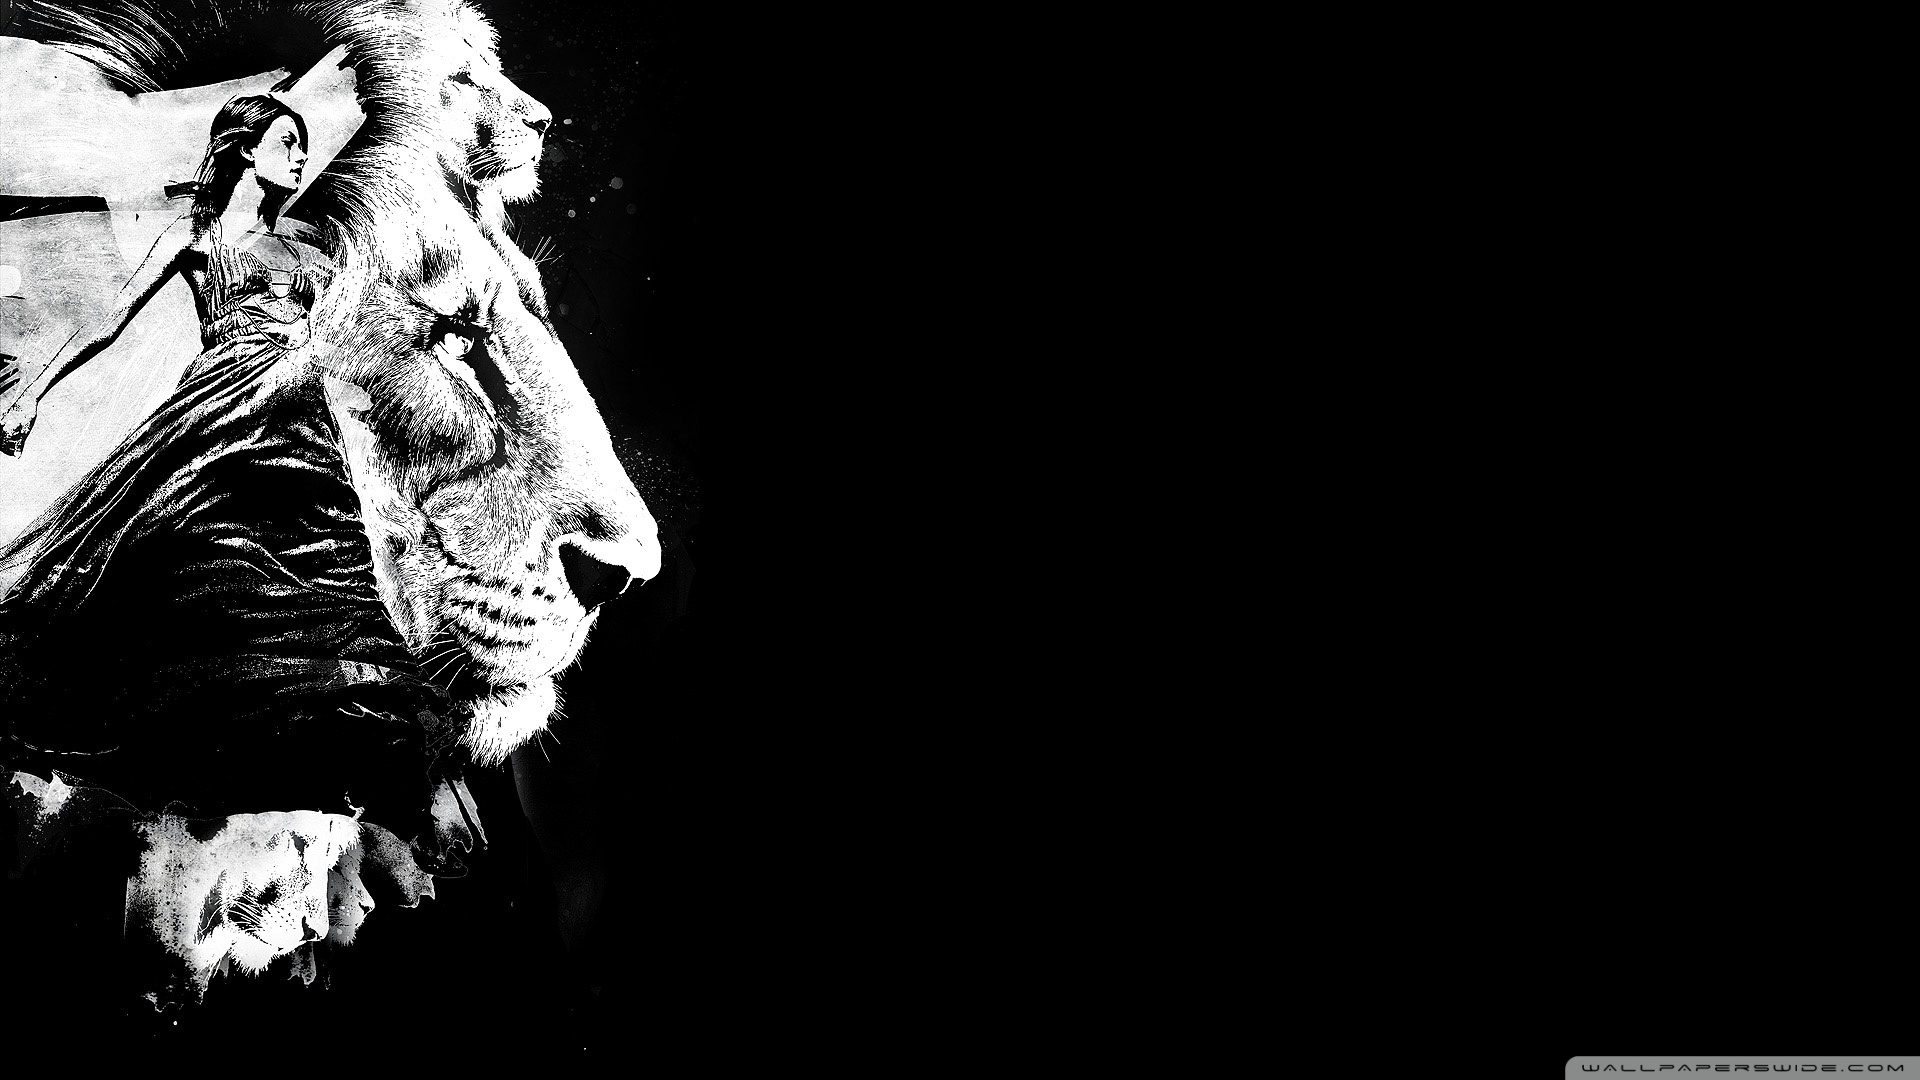 Free Download Black Lions Wallpaper To The Lions Wallpaper 1920x1080 For Your Desktop Mobile Tablet Explore 47 Lion Wallpaper Black And White White Lion Wallpaper Desktop Beautiful White Wallpaper